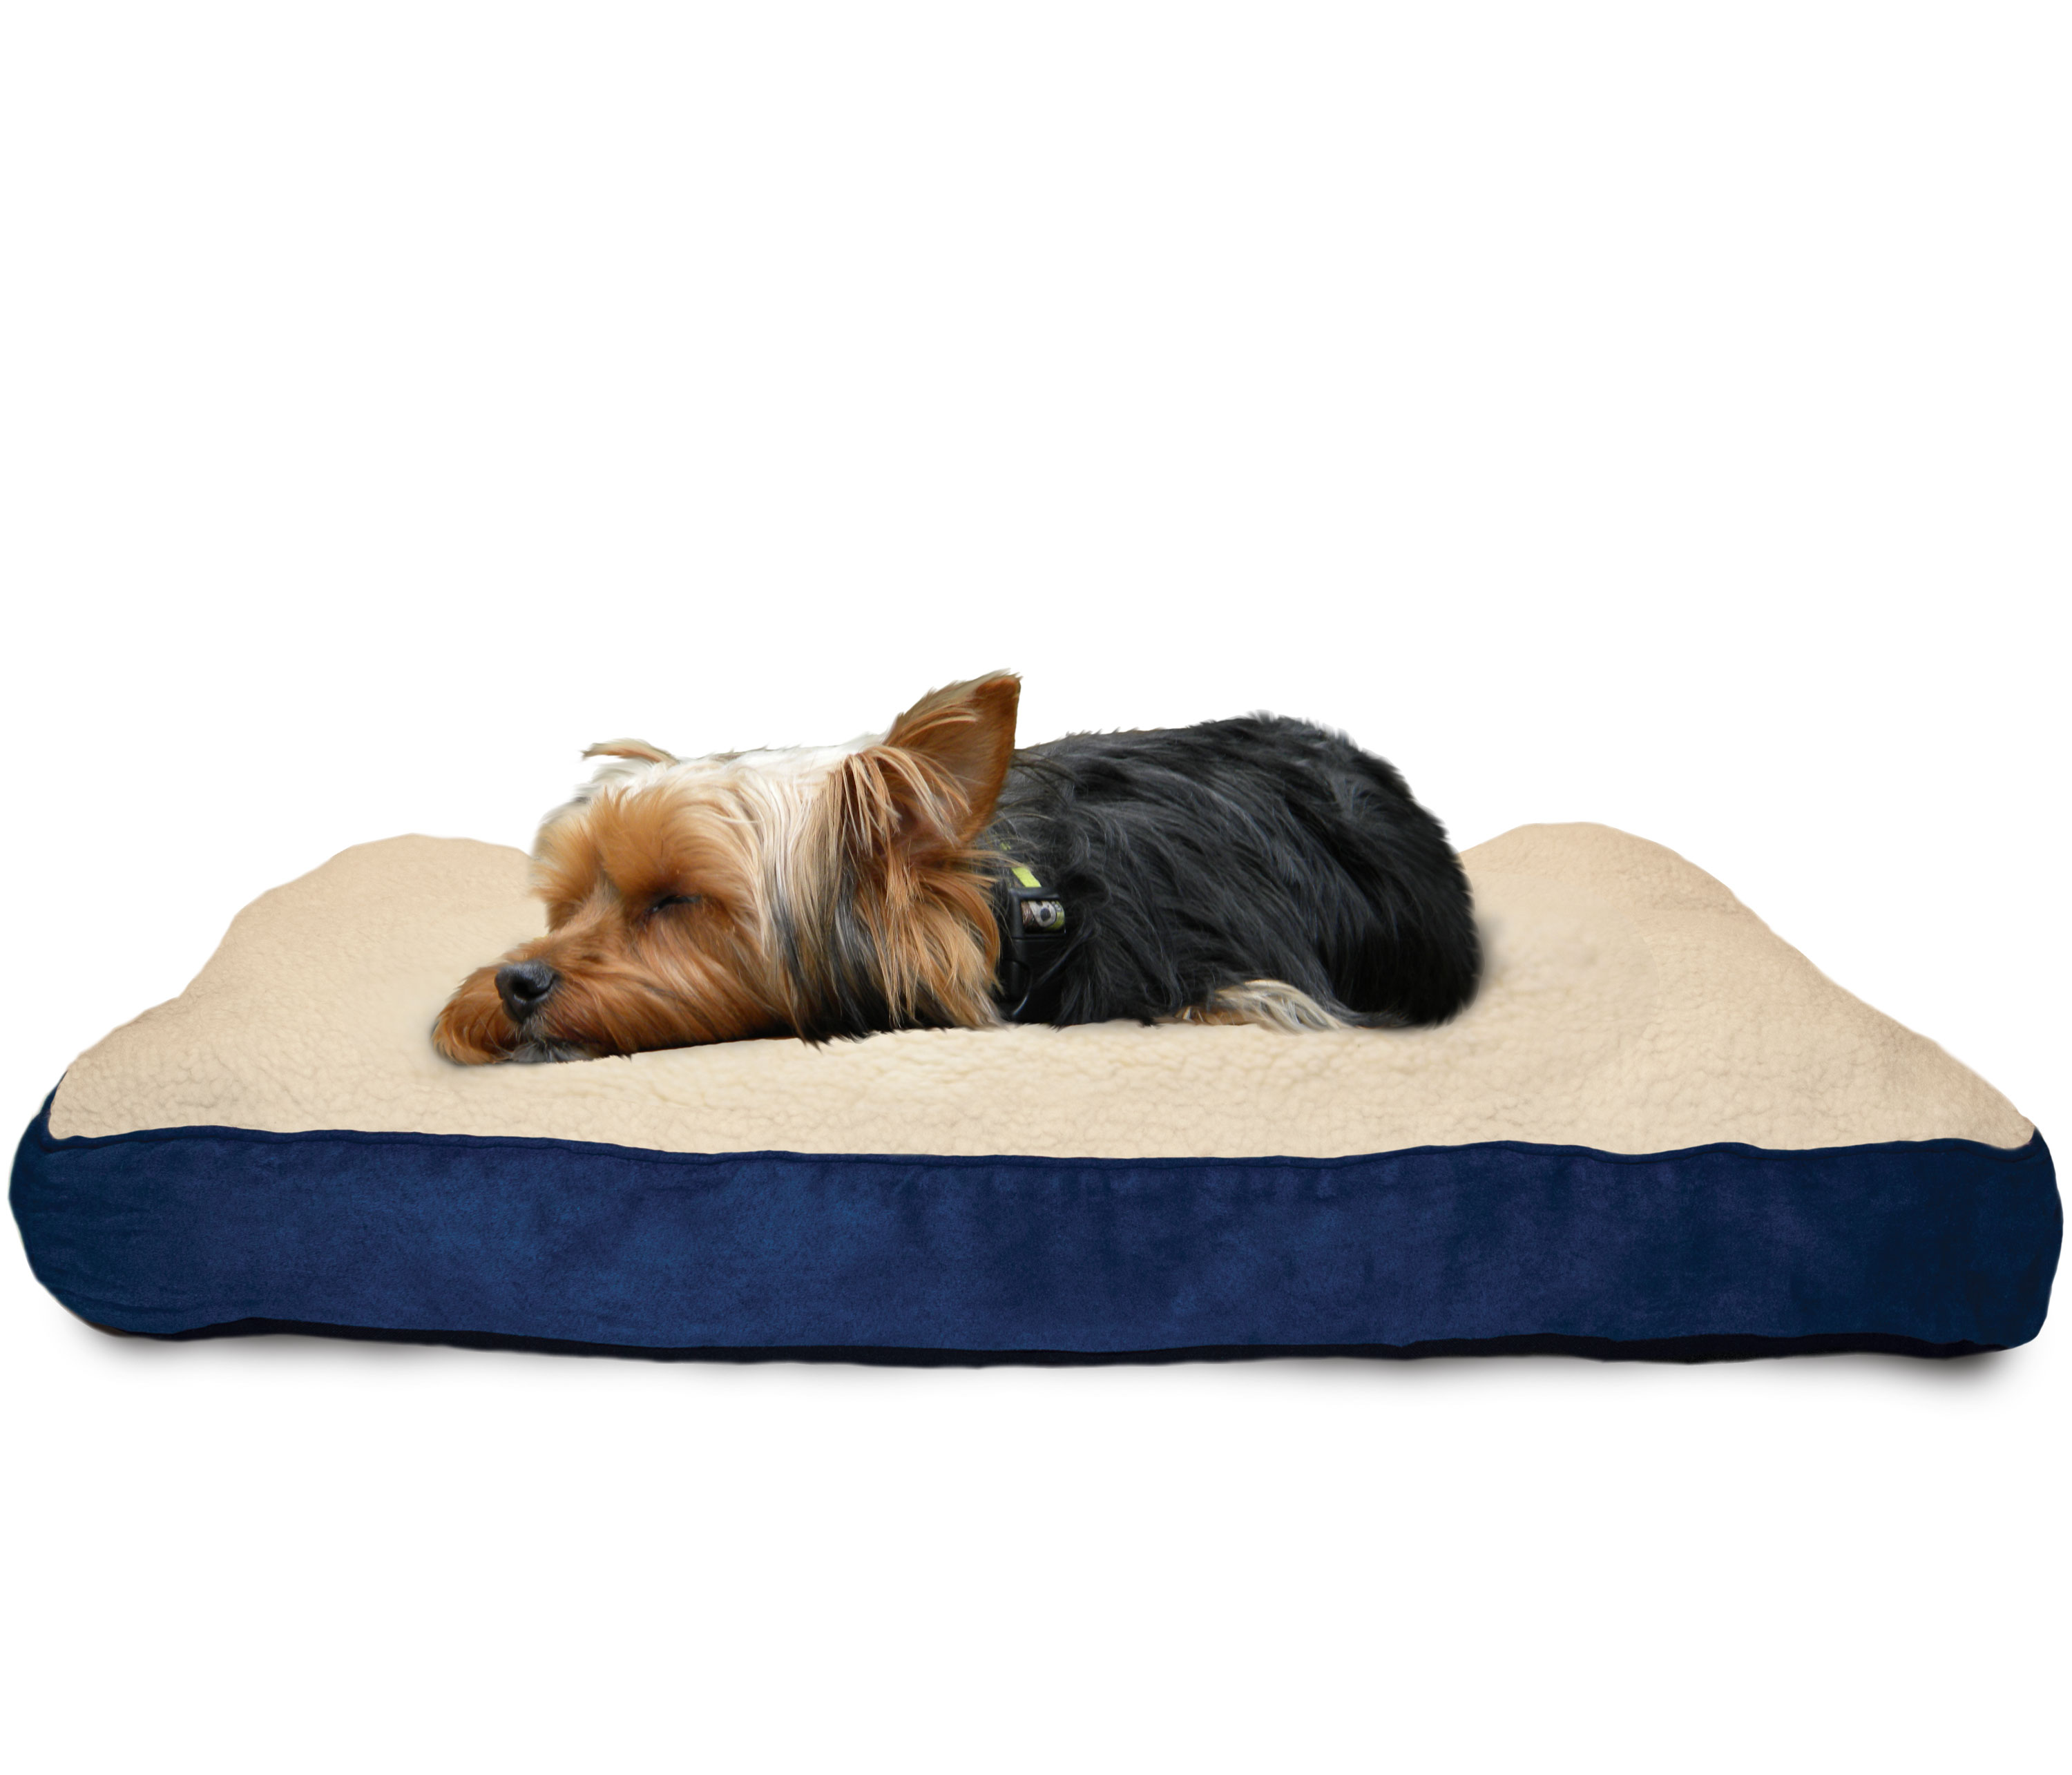 Furhaven pet nap deluxe pillow pet bed for dogs ebay for Dog haus dog beds